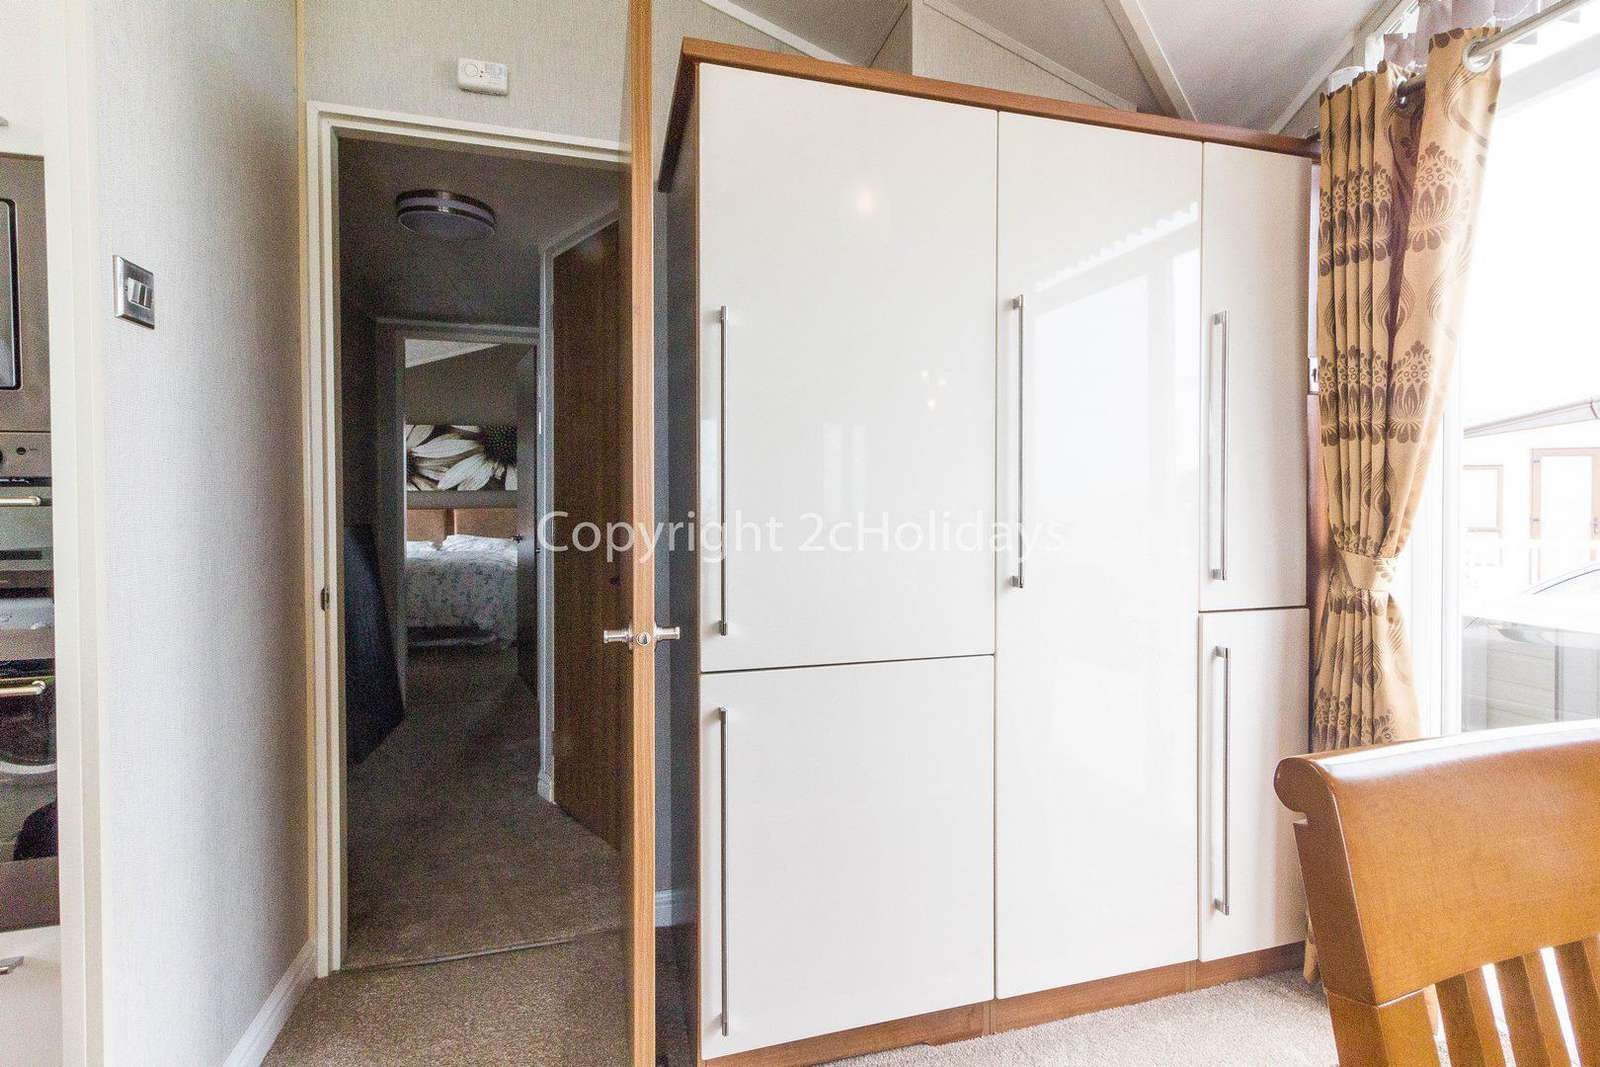 Static home for hire at the Hopton Holiday Village